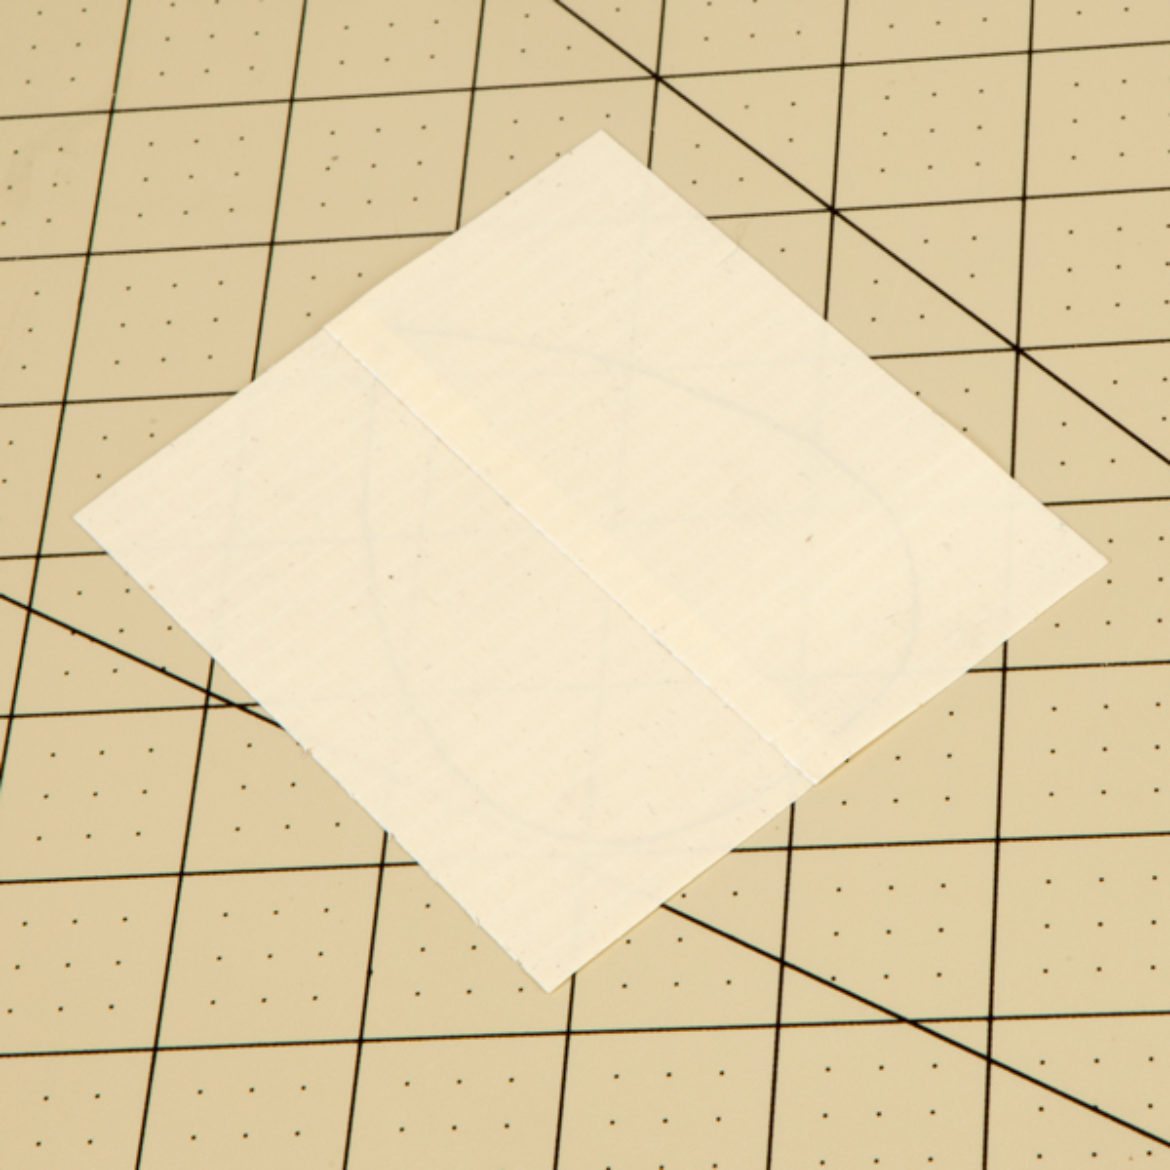 Two pieces of tape overlapped to make a square of Duck Tape